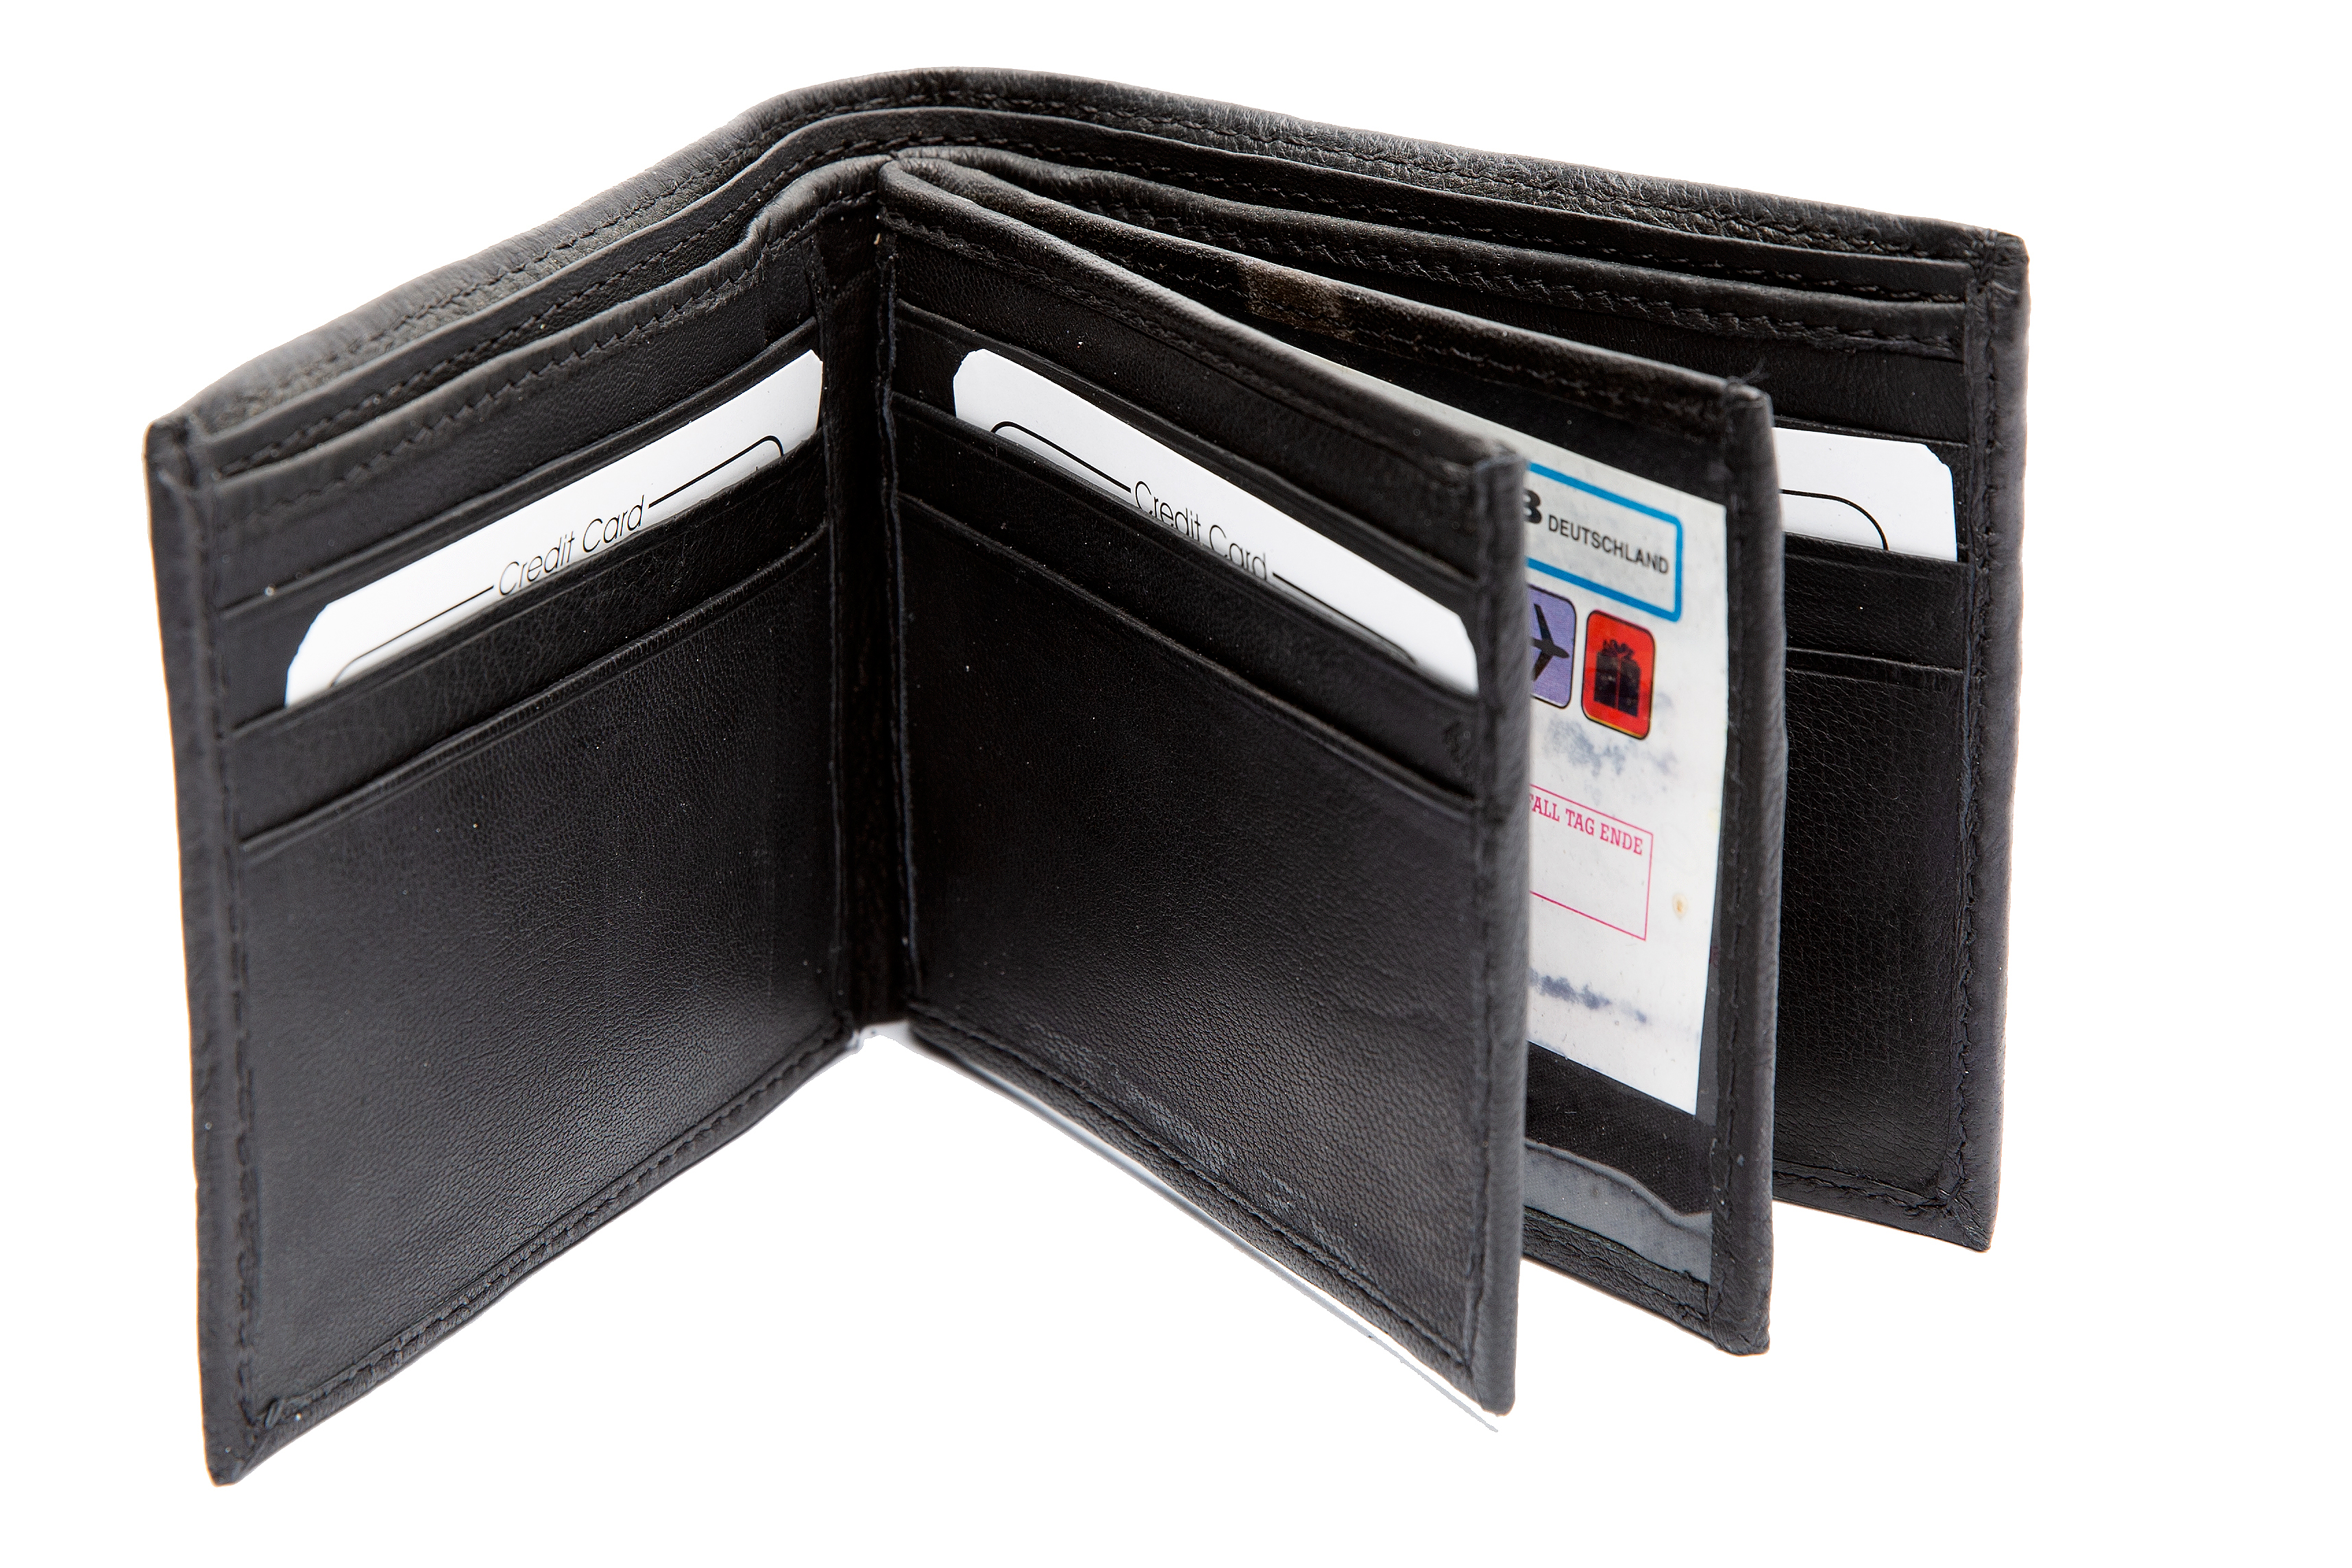 leather bifold 12 credit card slot 2 id window black men 39 s